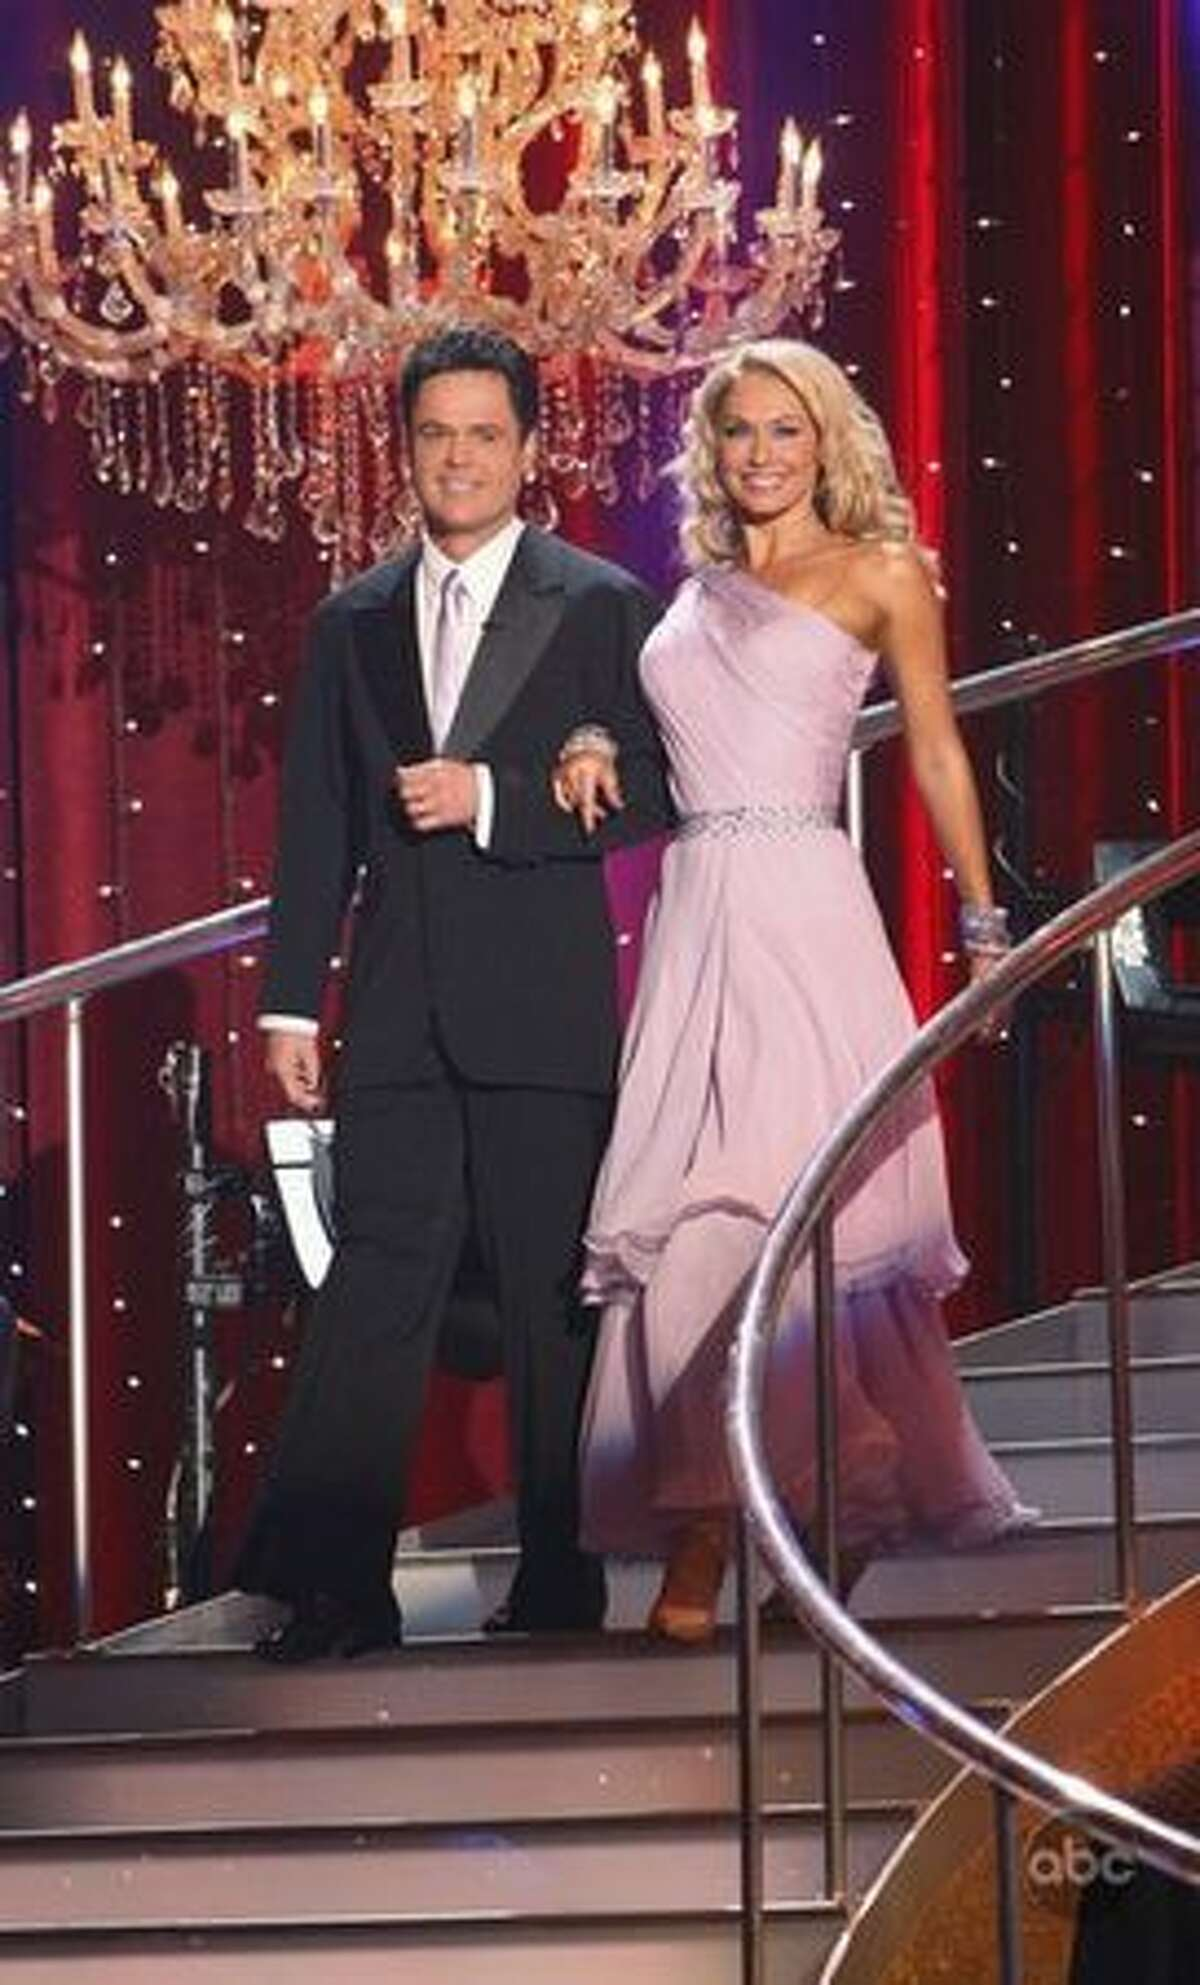 Singer Donny Osmond and professional dancer Kym Johnson are introduced.